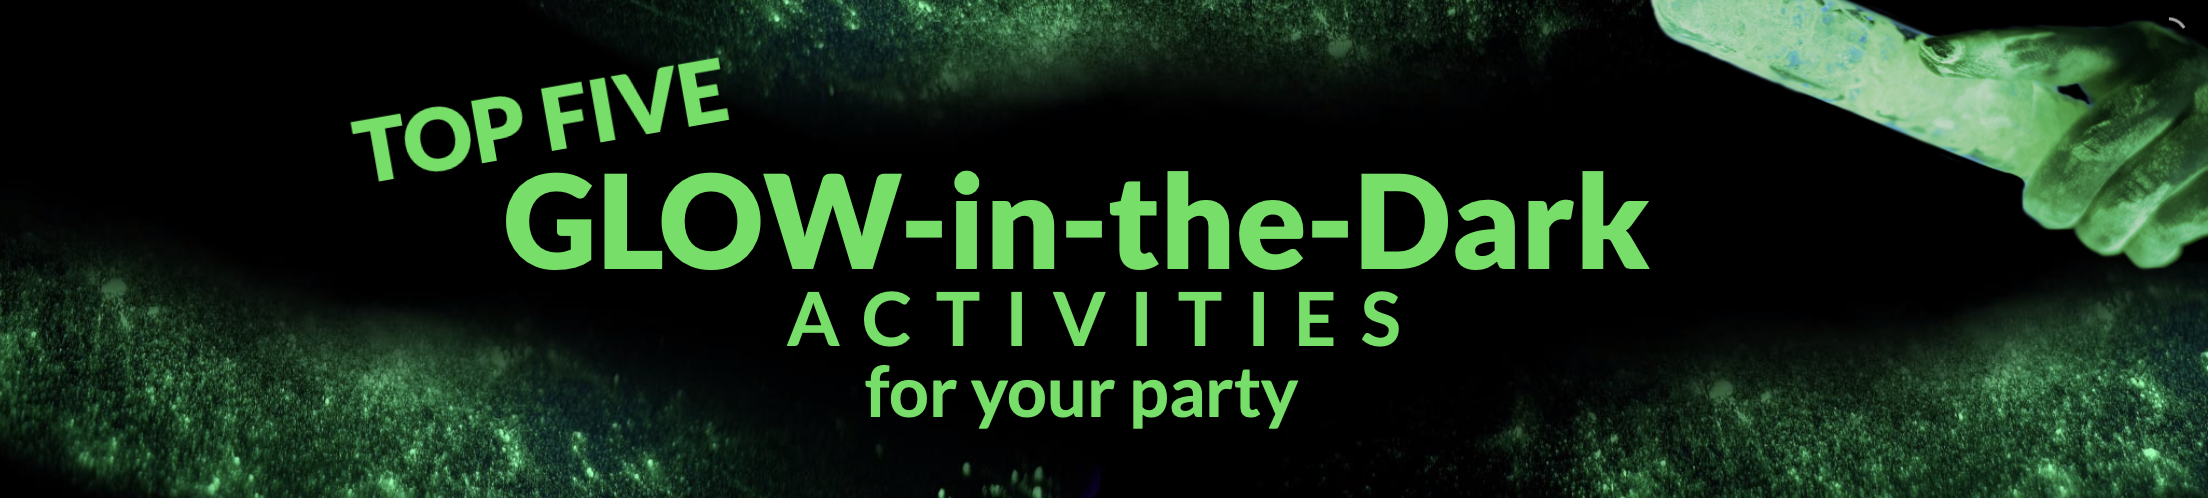 Top 5 Glow-in-the-Dark Activities